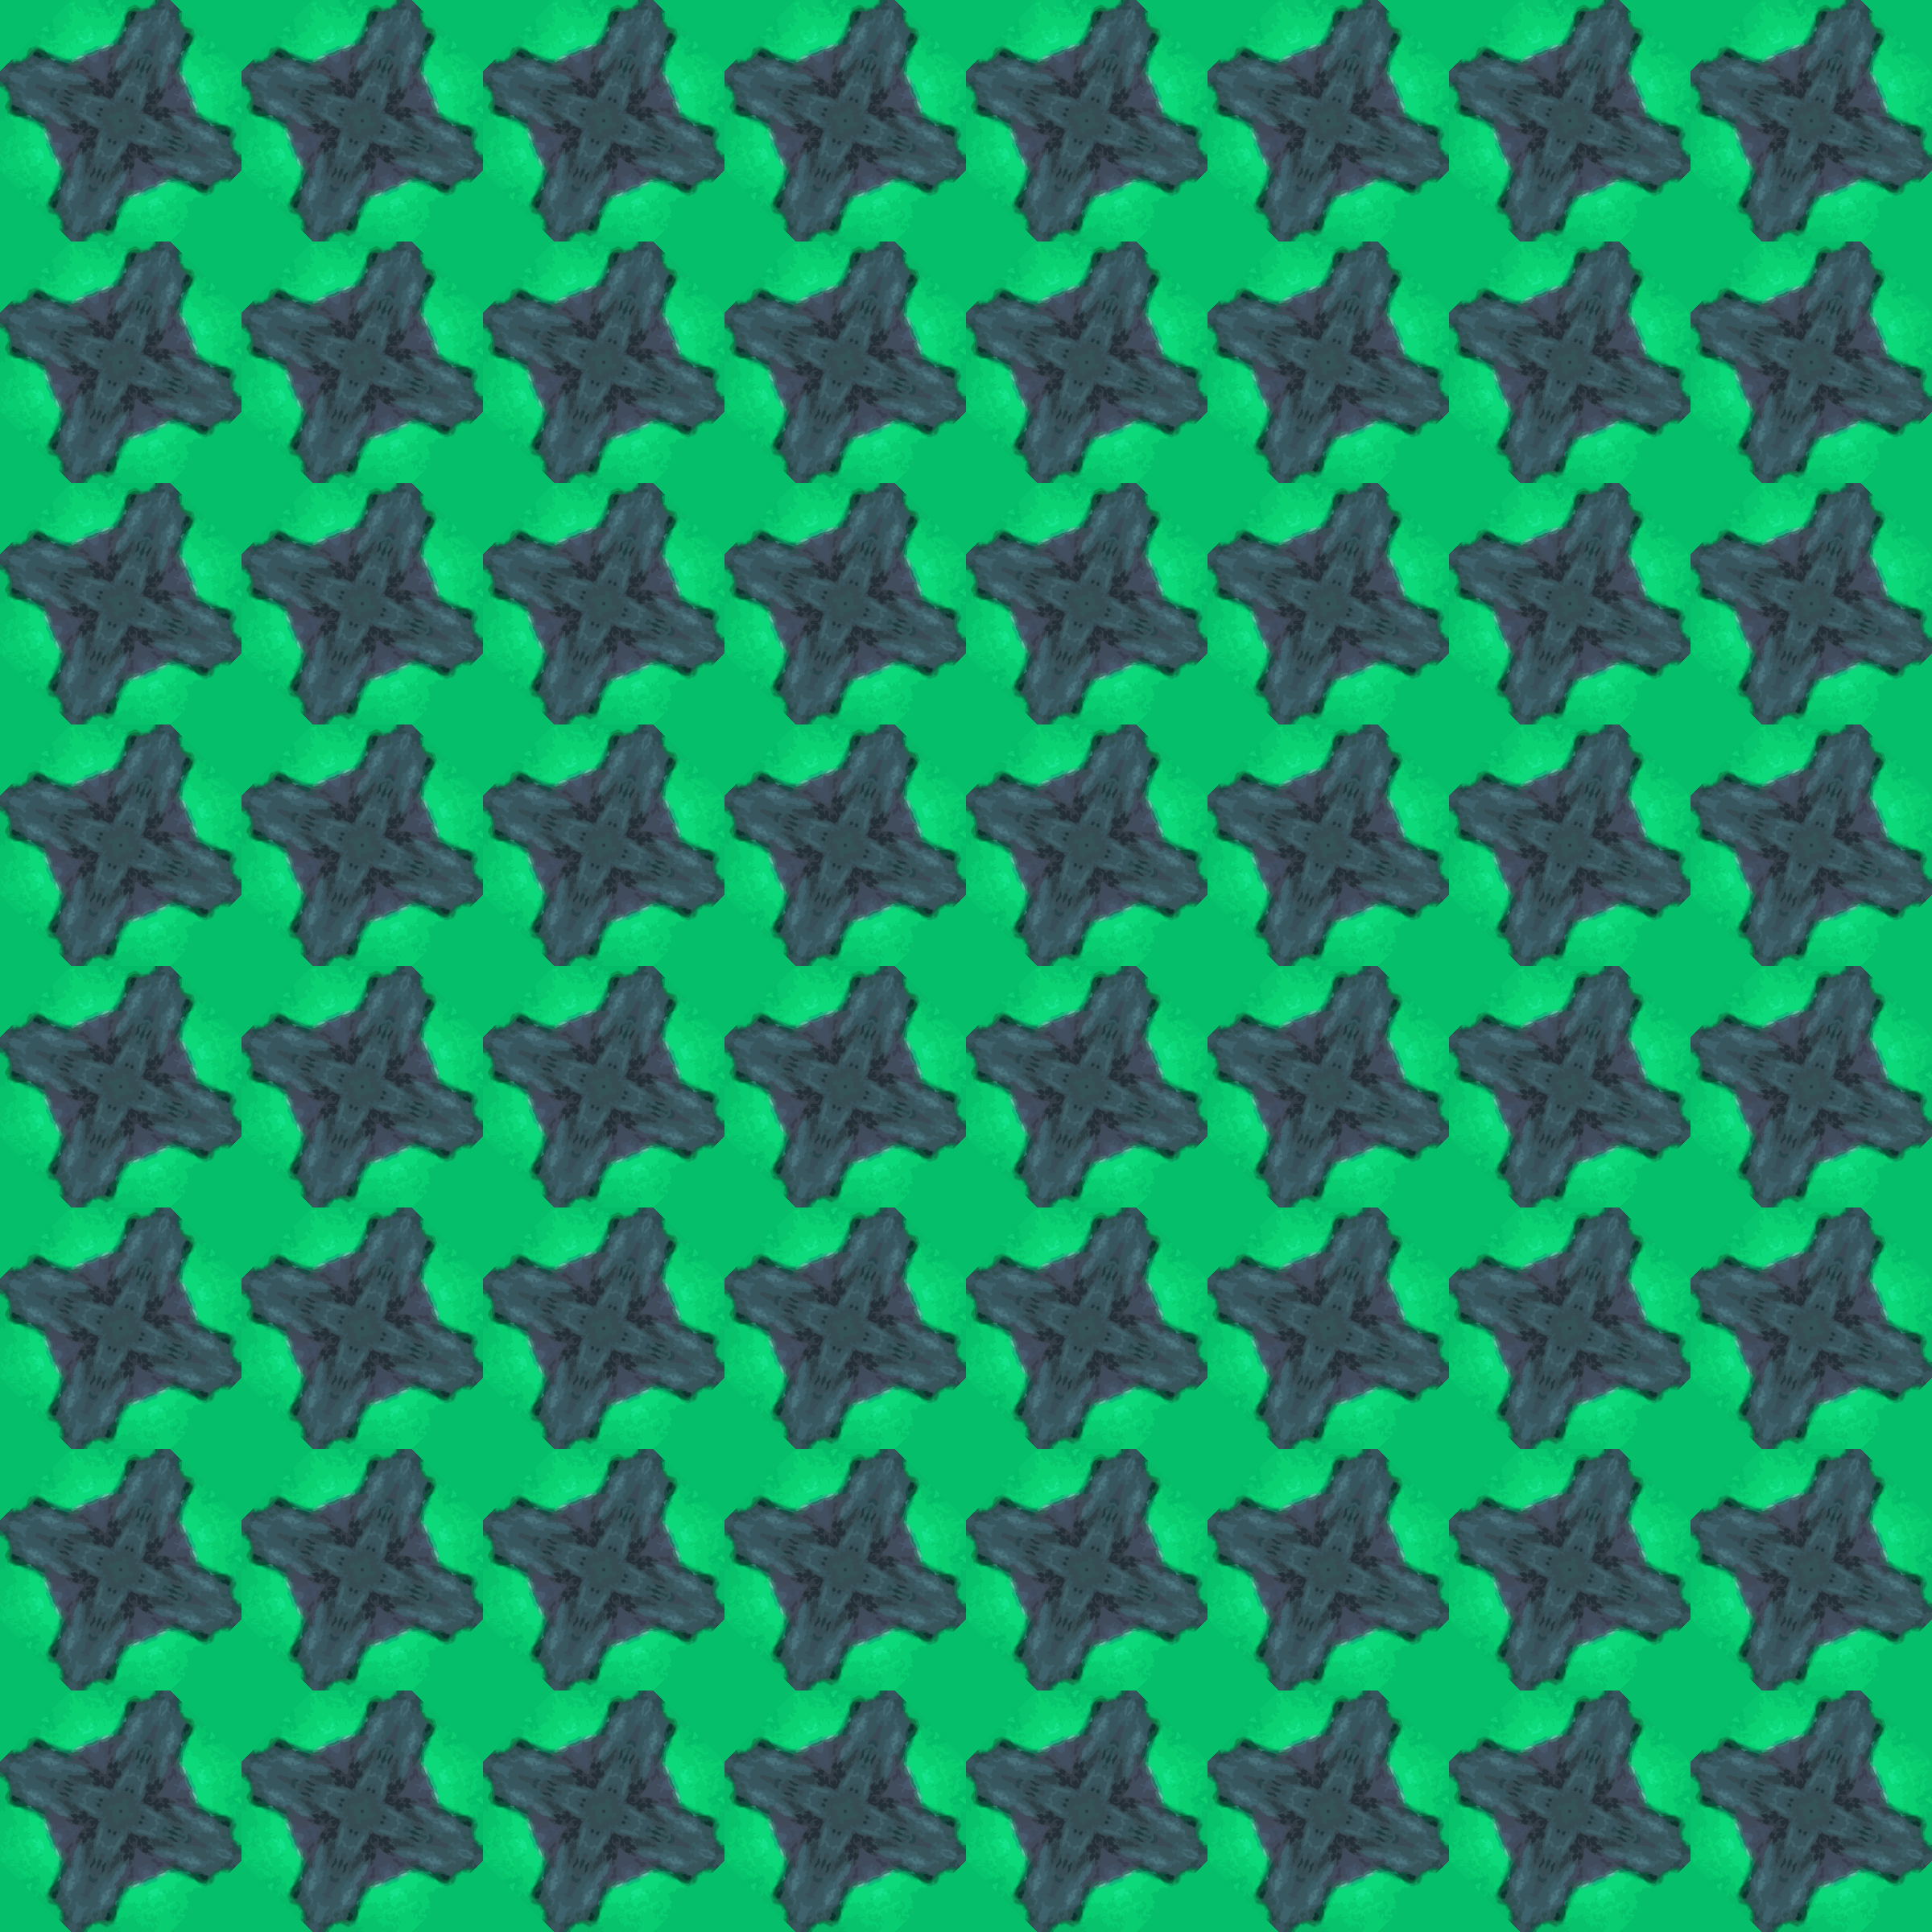 Background pattern 181 (colour 2) by Firkin